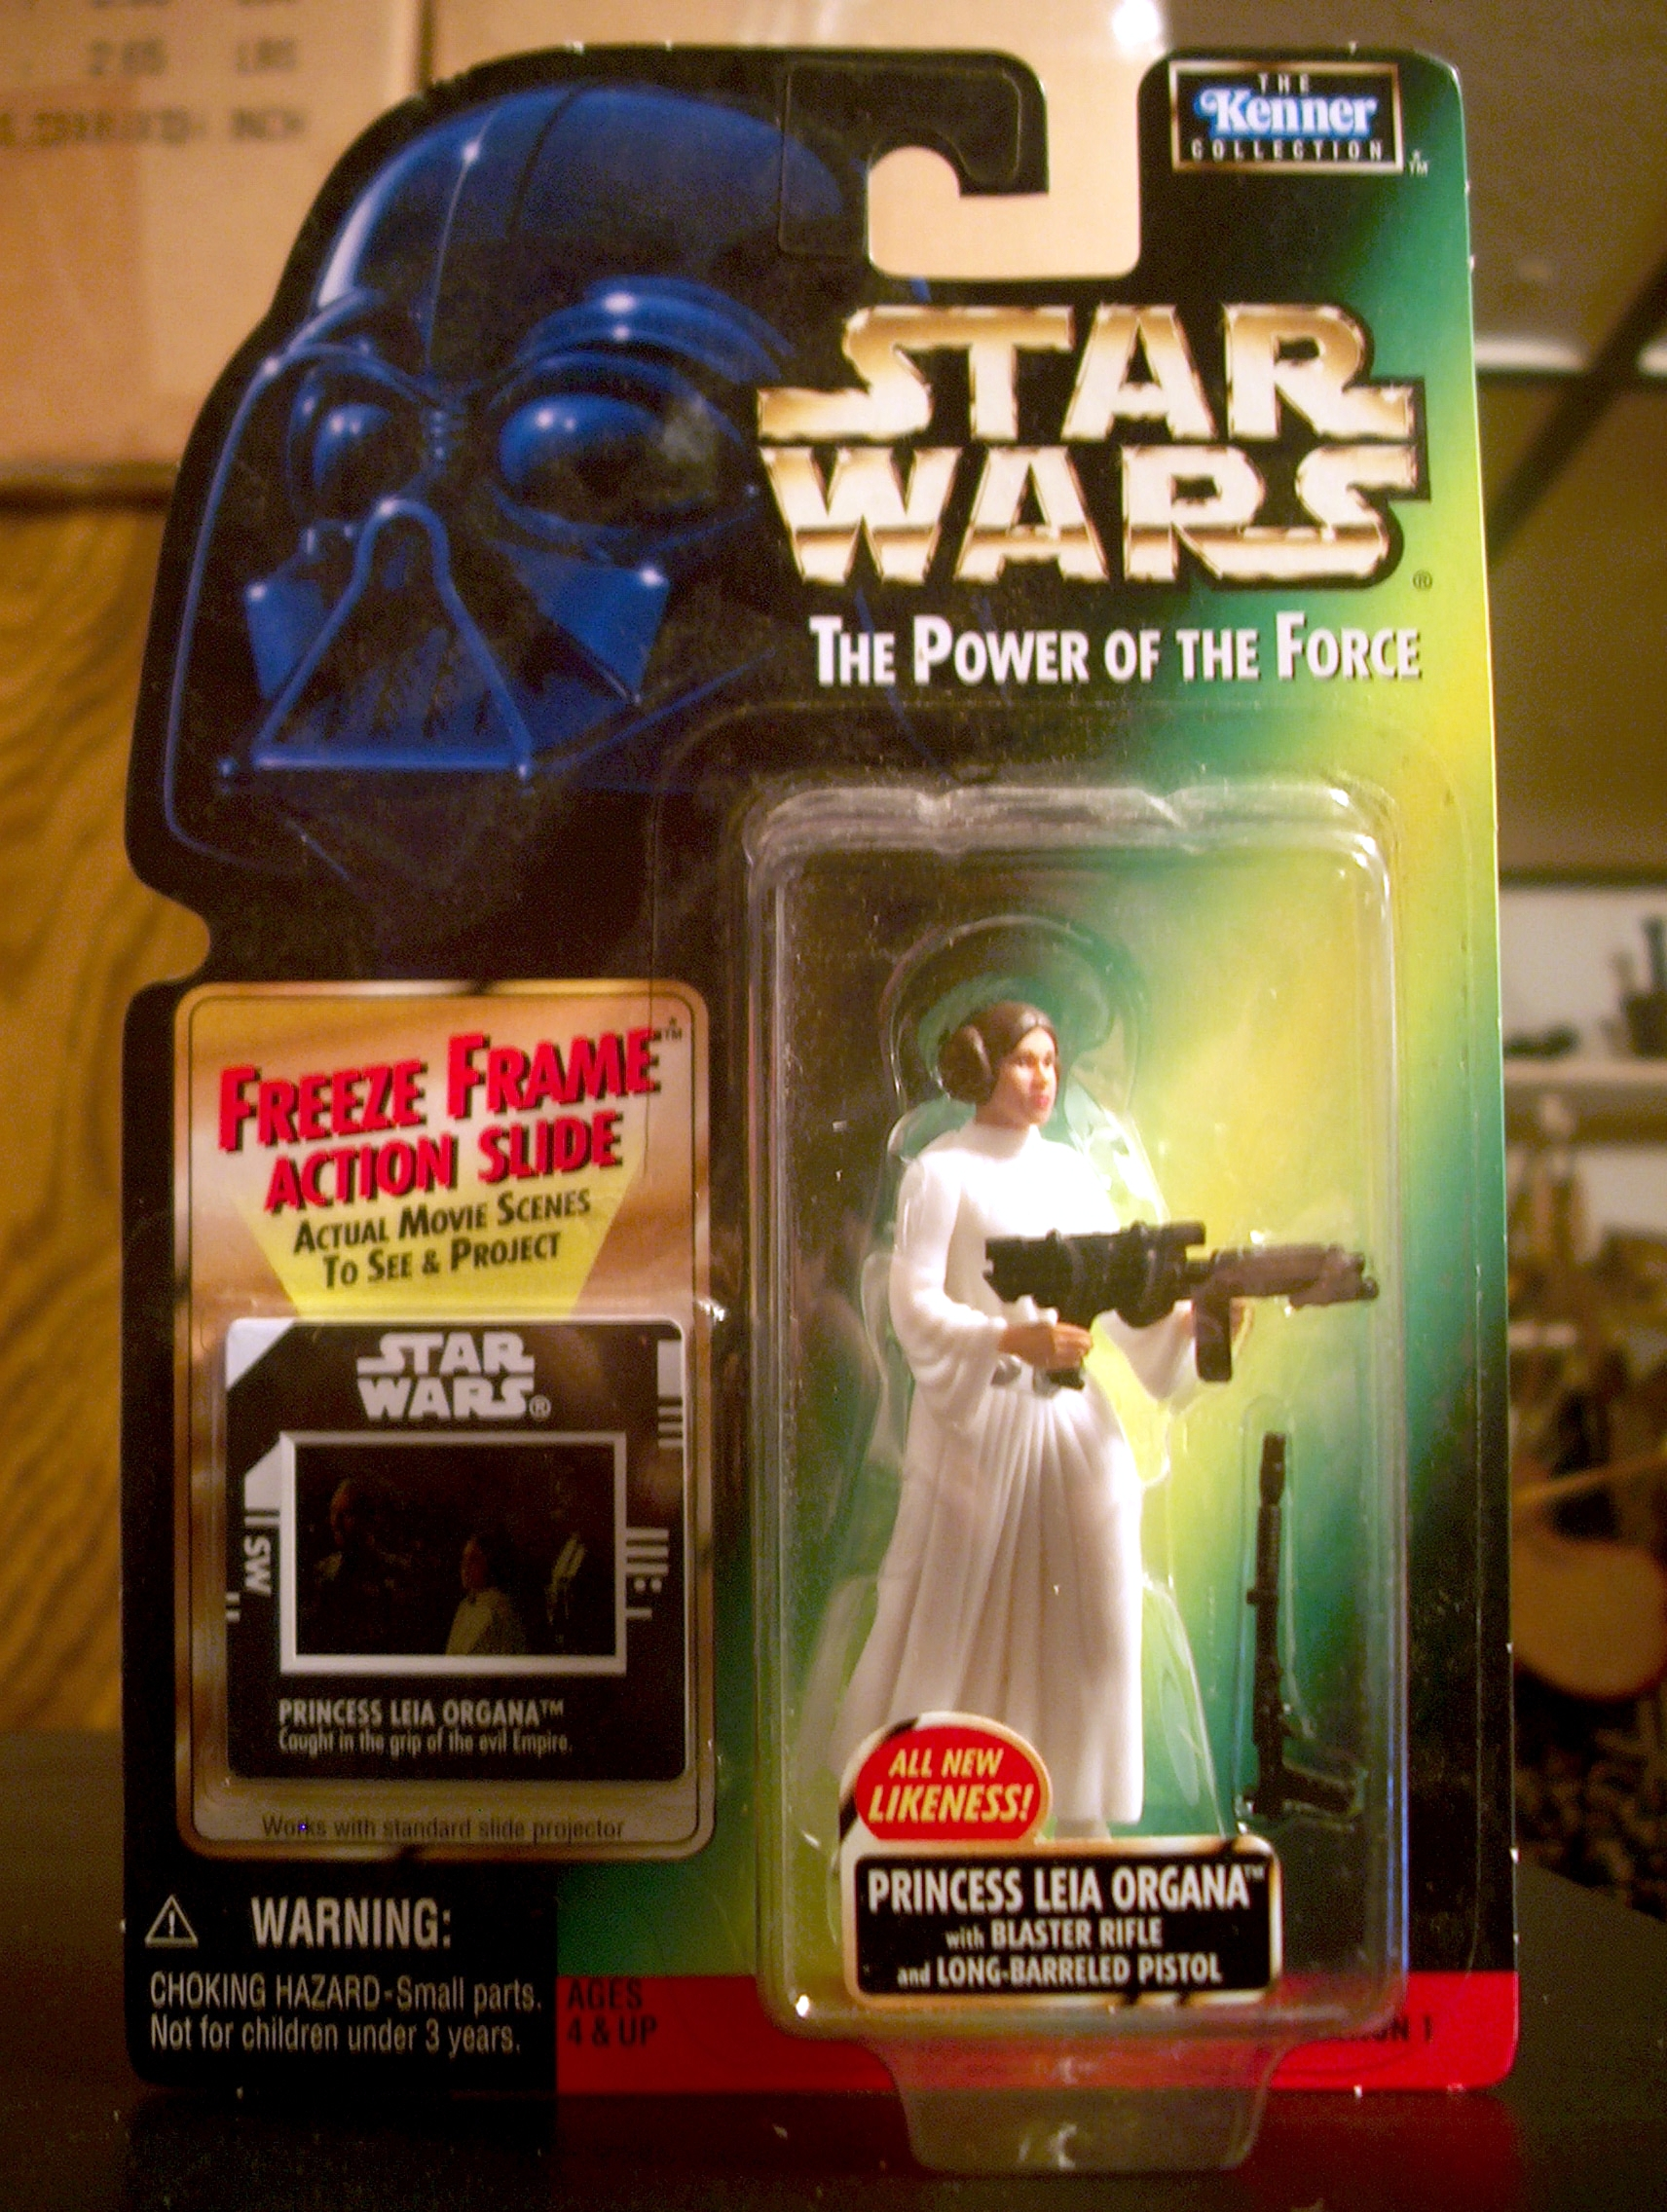 Princess Leia Organa with Blaster Rifle and Long-Barreled Pistol (All New Likeness!)